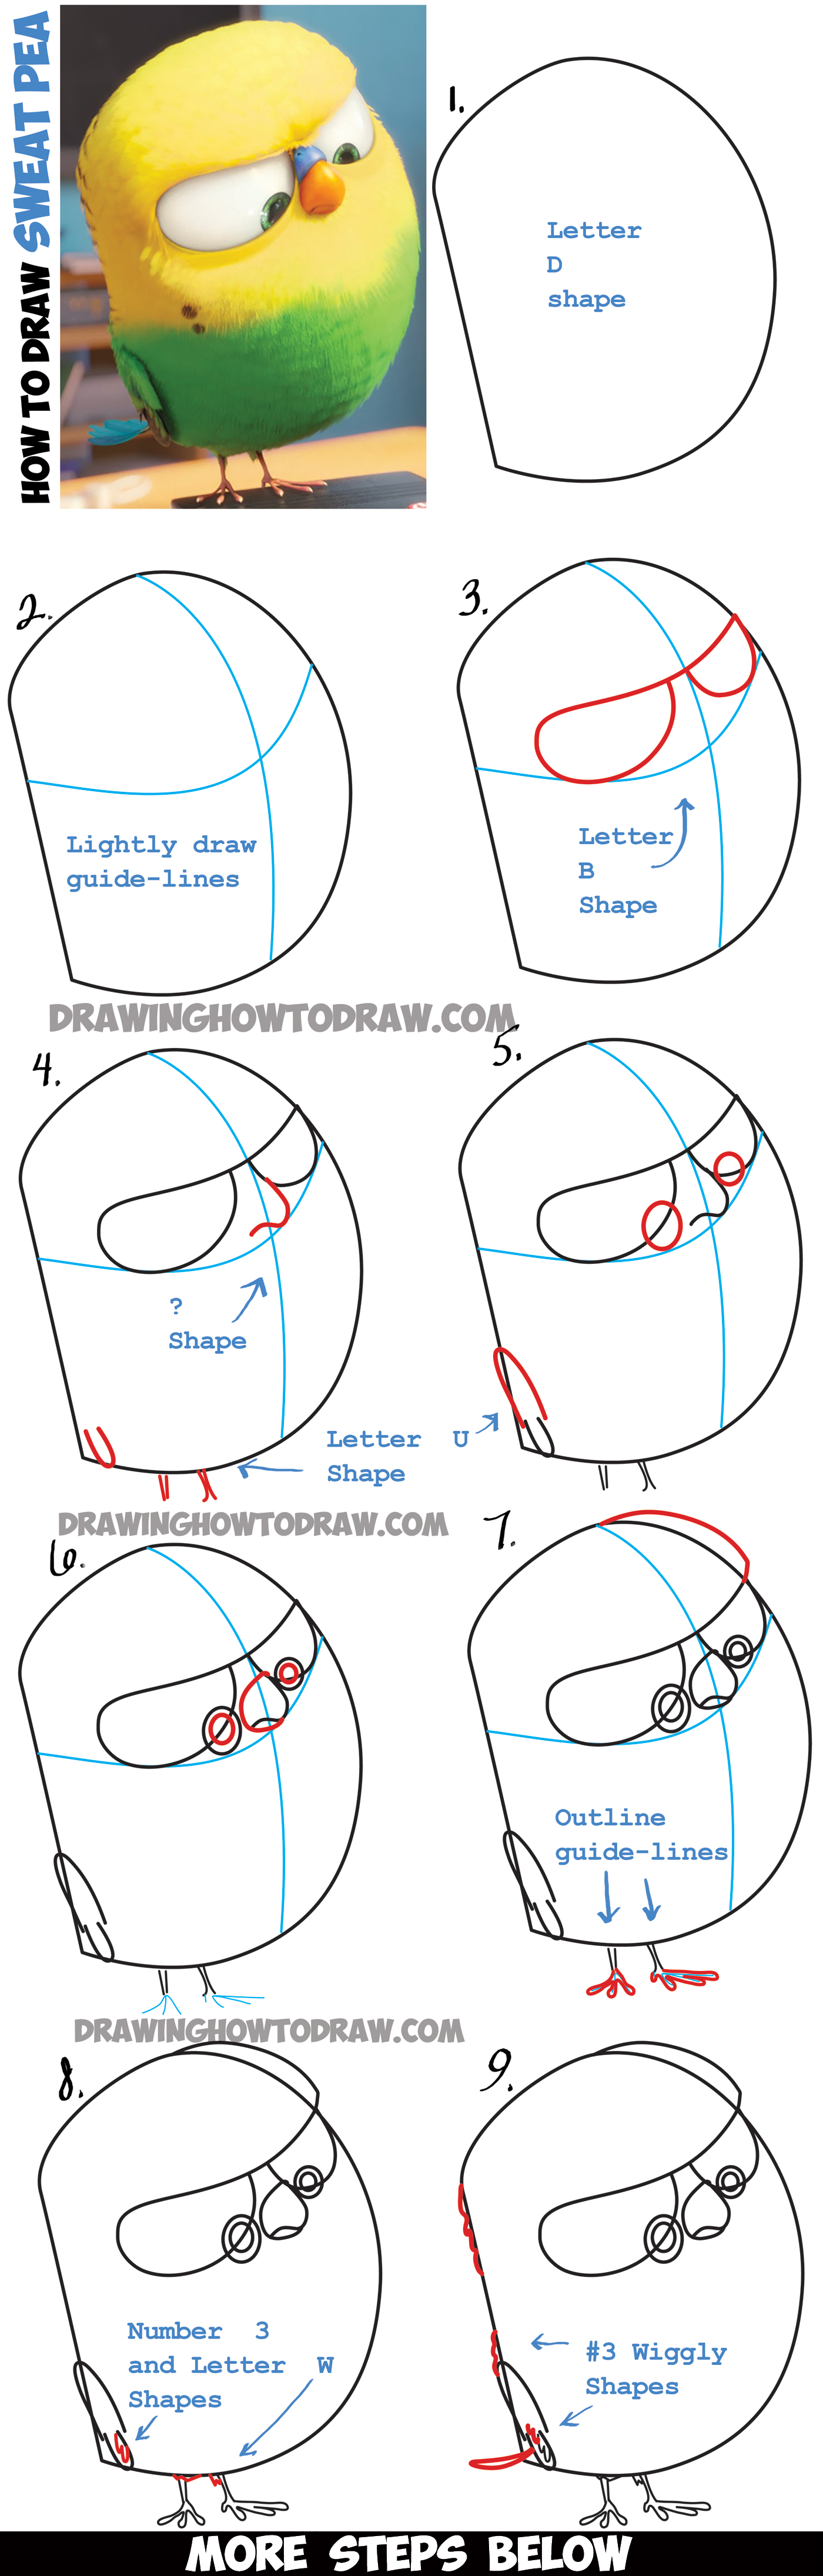 Learn How to Draw Sweet Pea the Bird from The Secret Life of Pets - Easy Step by Step Drawing Lesson